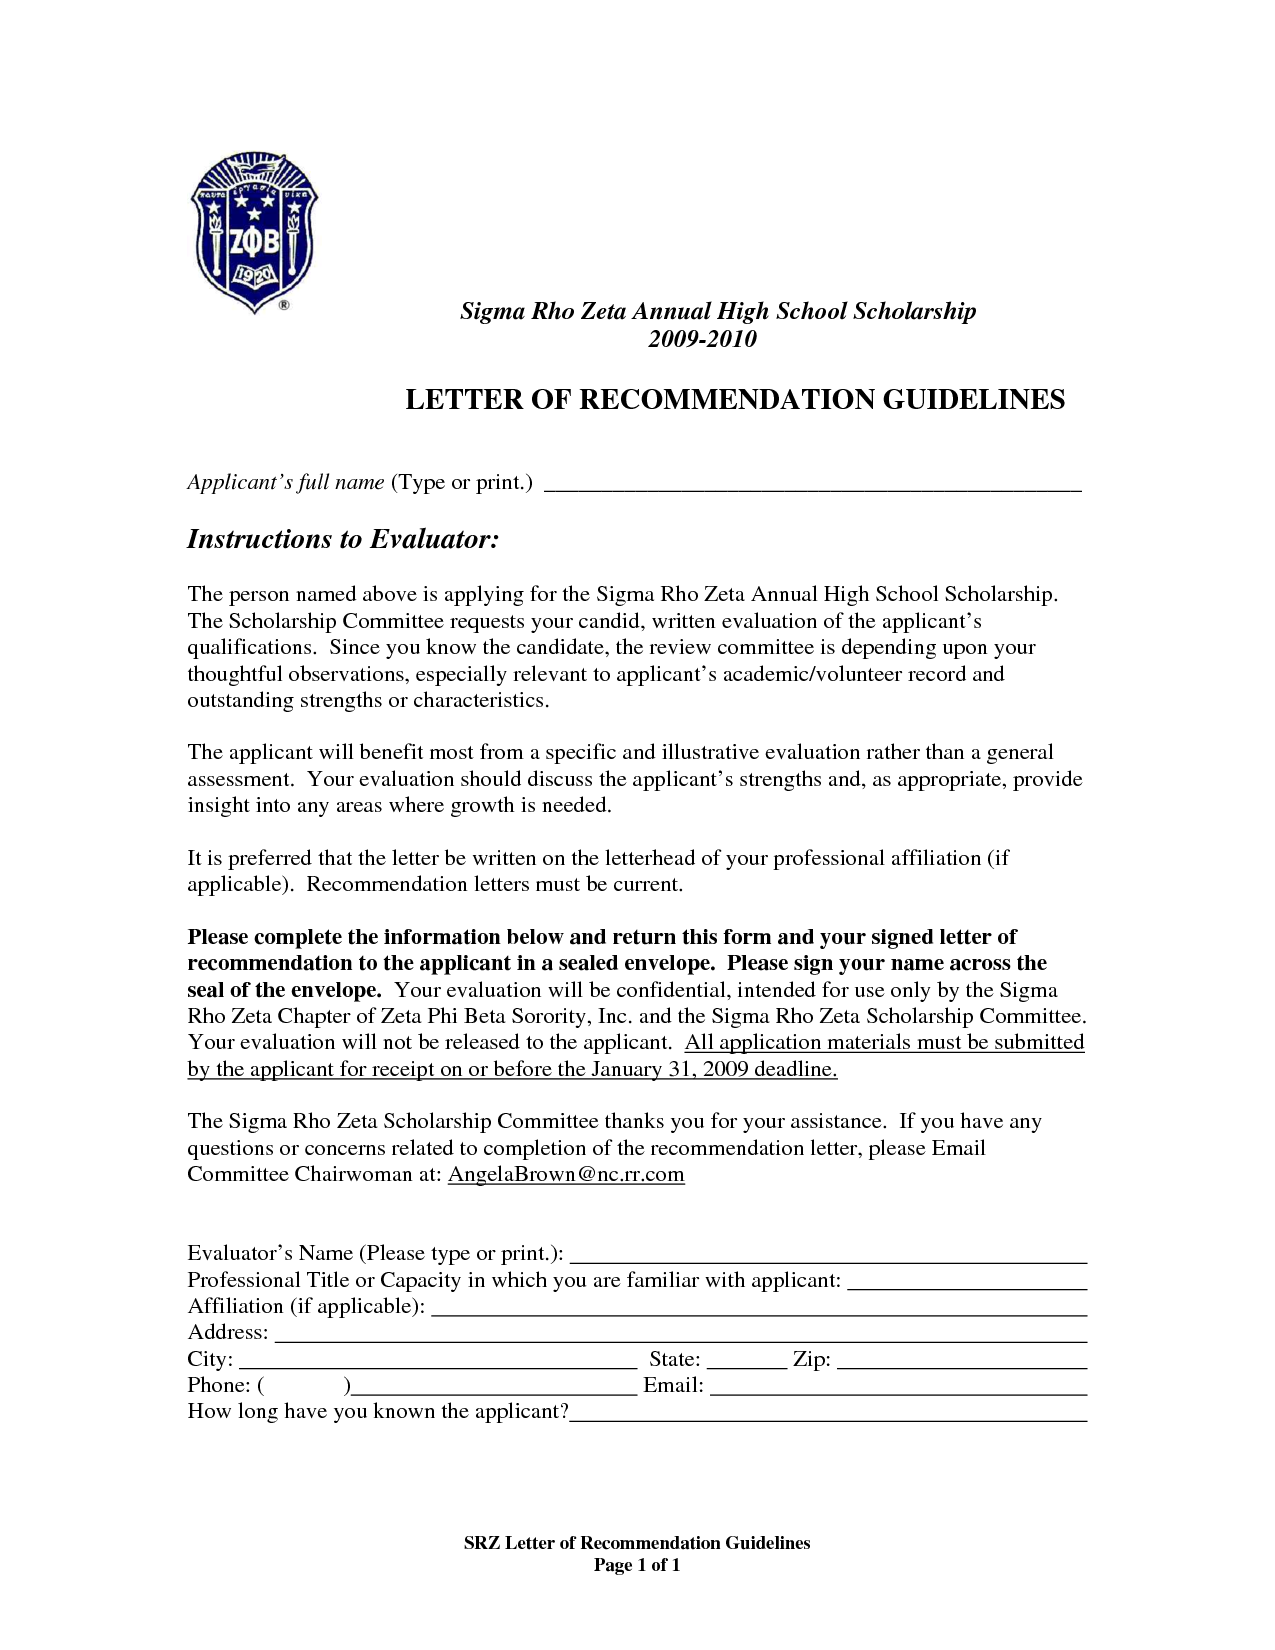 template letter of recommendation for student